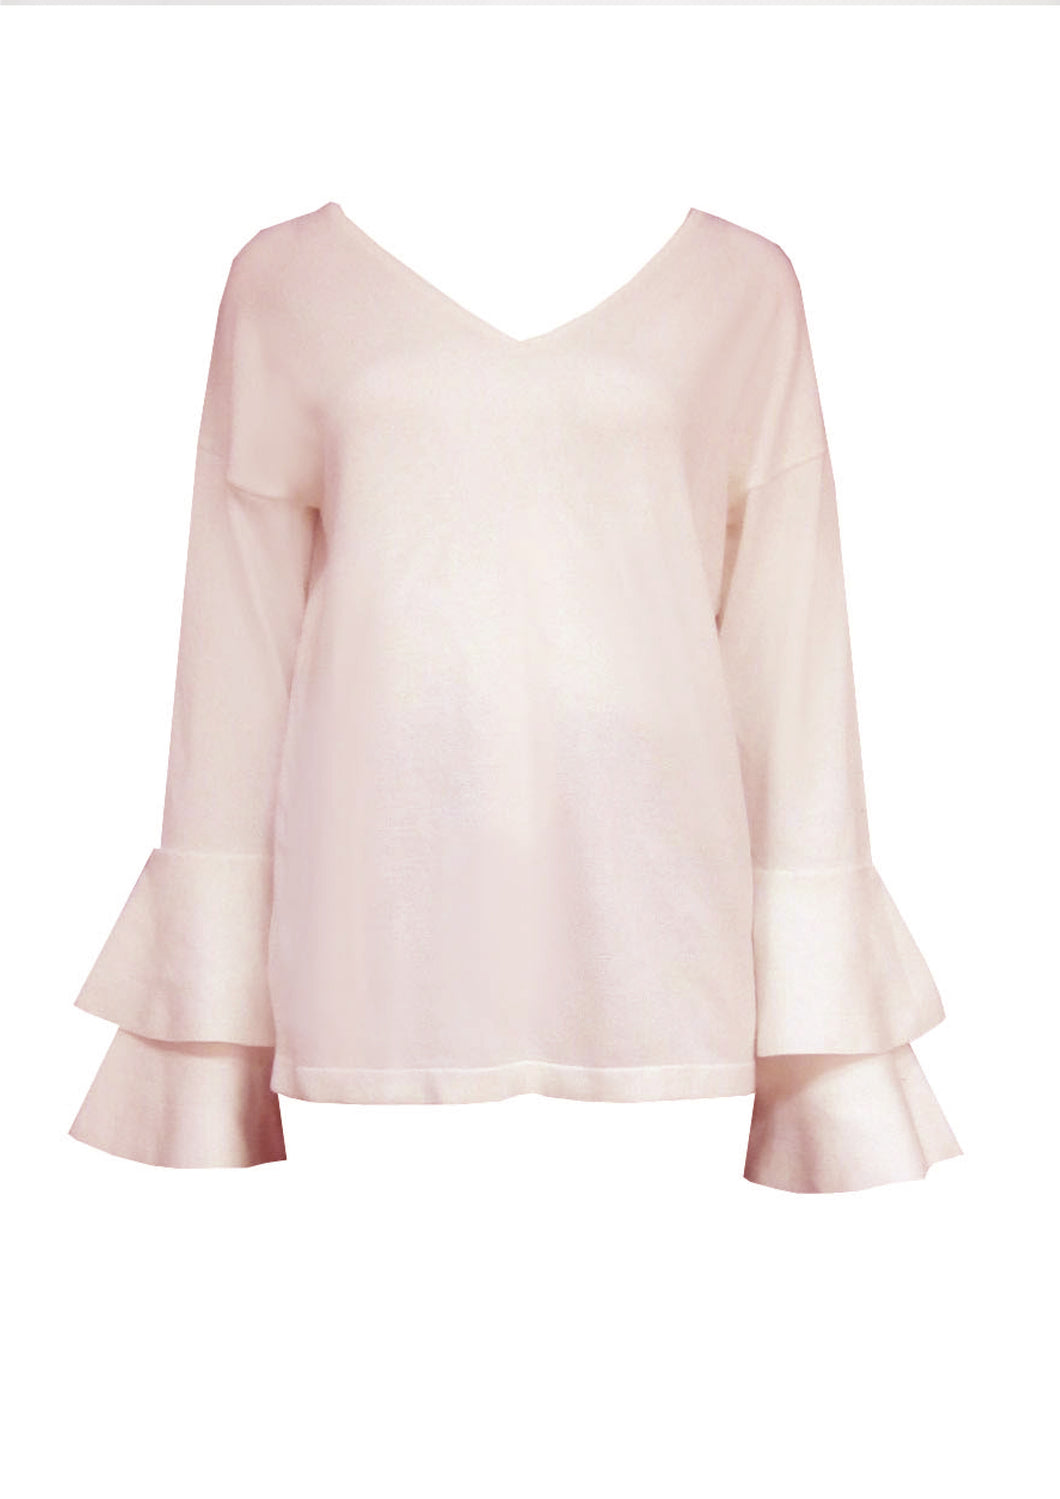 F2599-2SS Double Layered Bell Sleeve Top (Pack) New Arrival